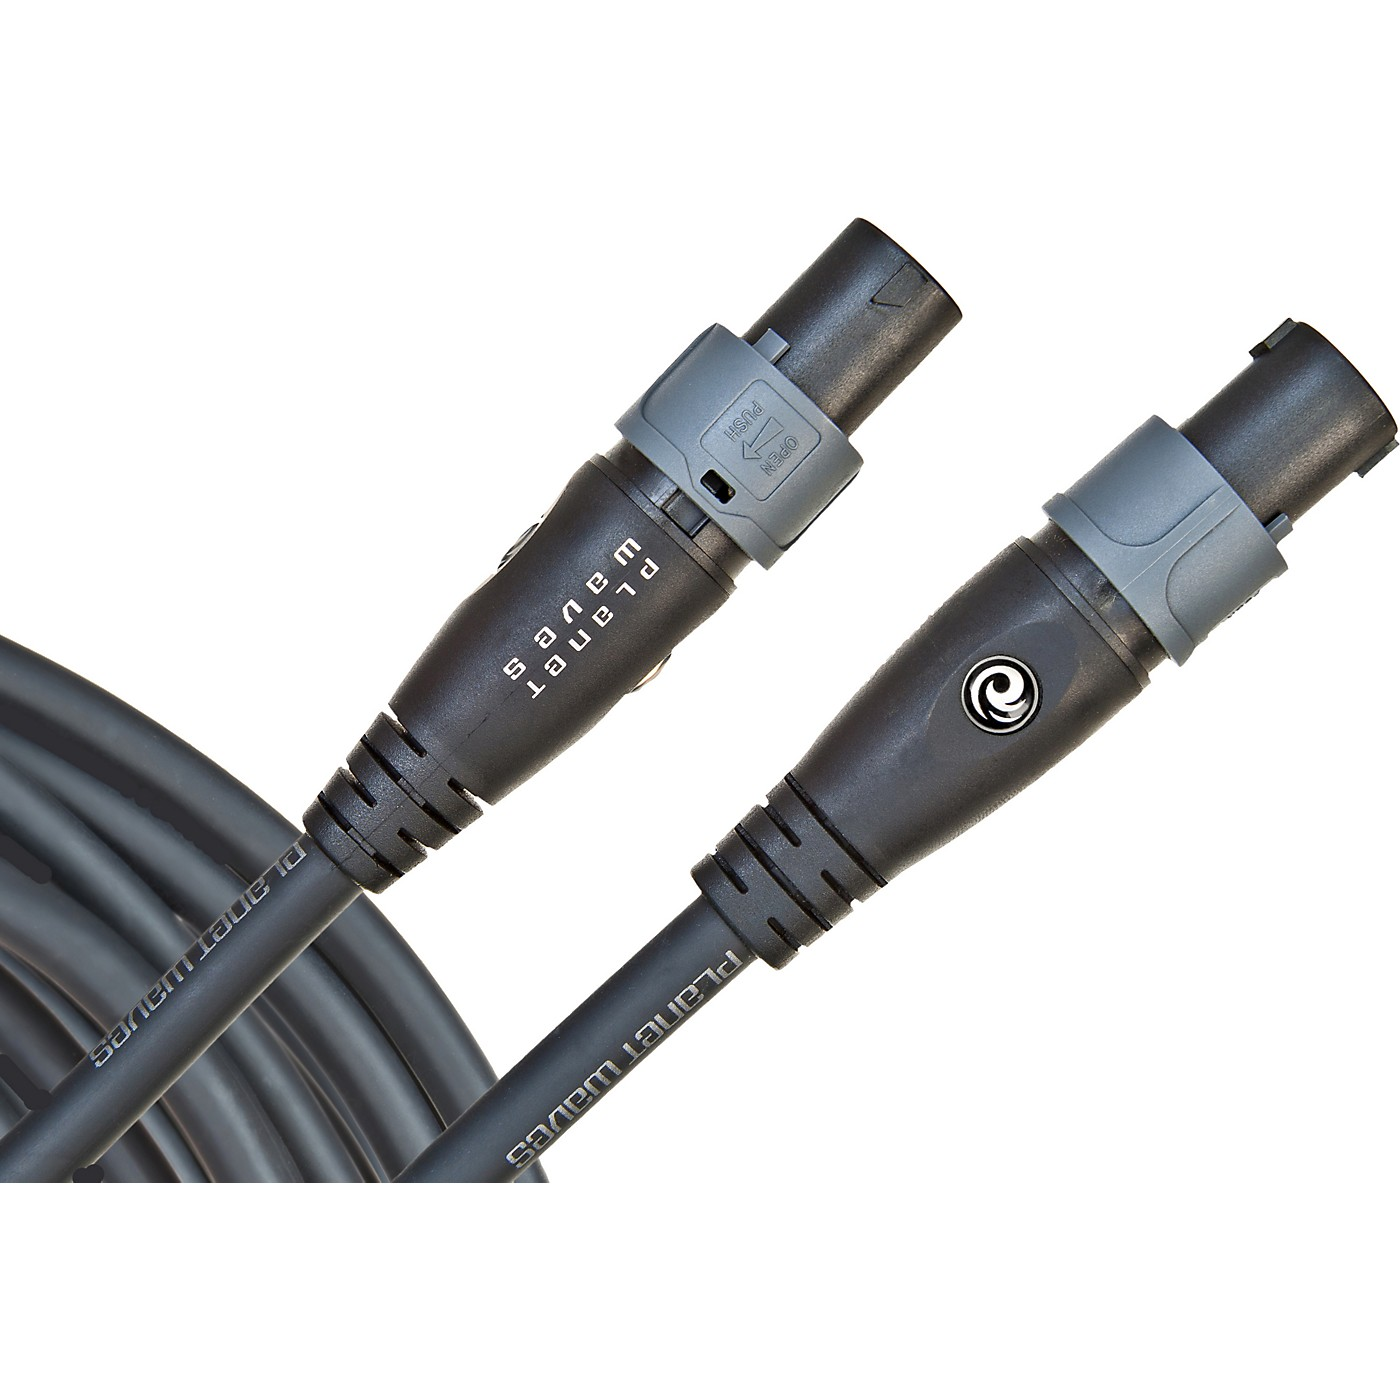 D'Addario Planet Waves Speaker Cable with SpeakOn Plugs - 25 ft. thumbnail